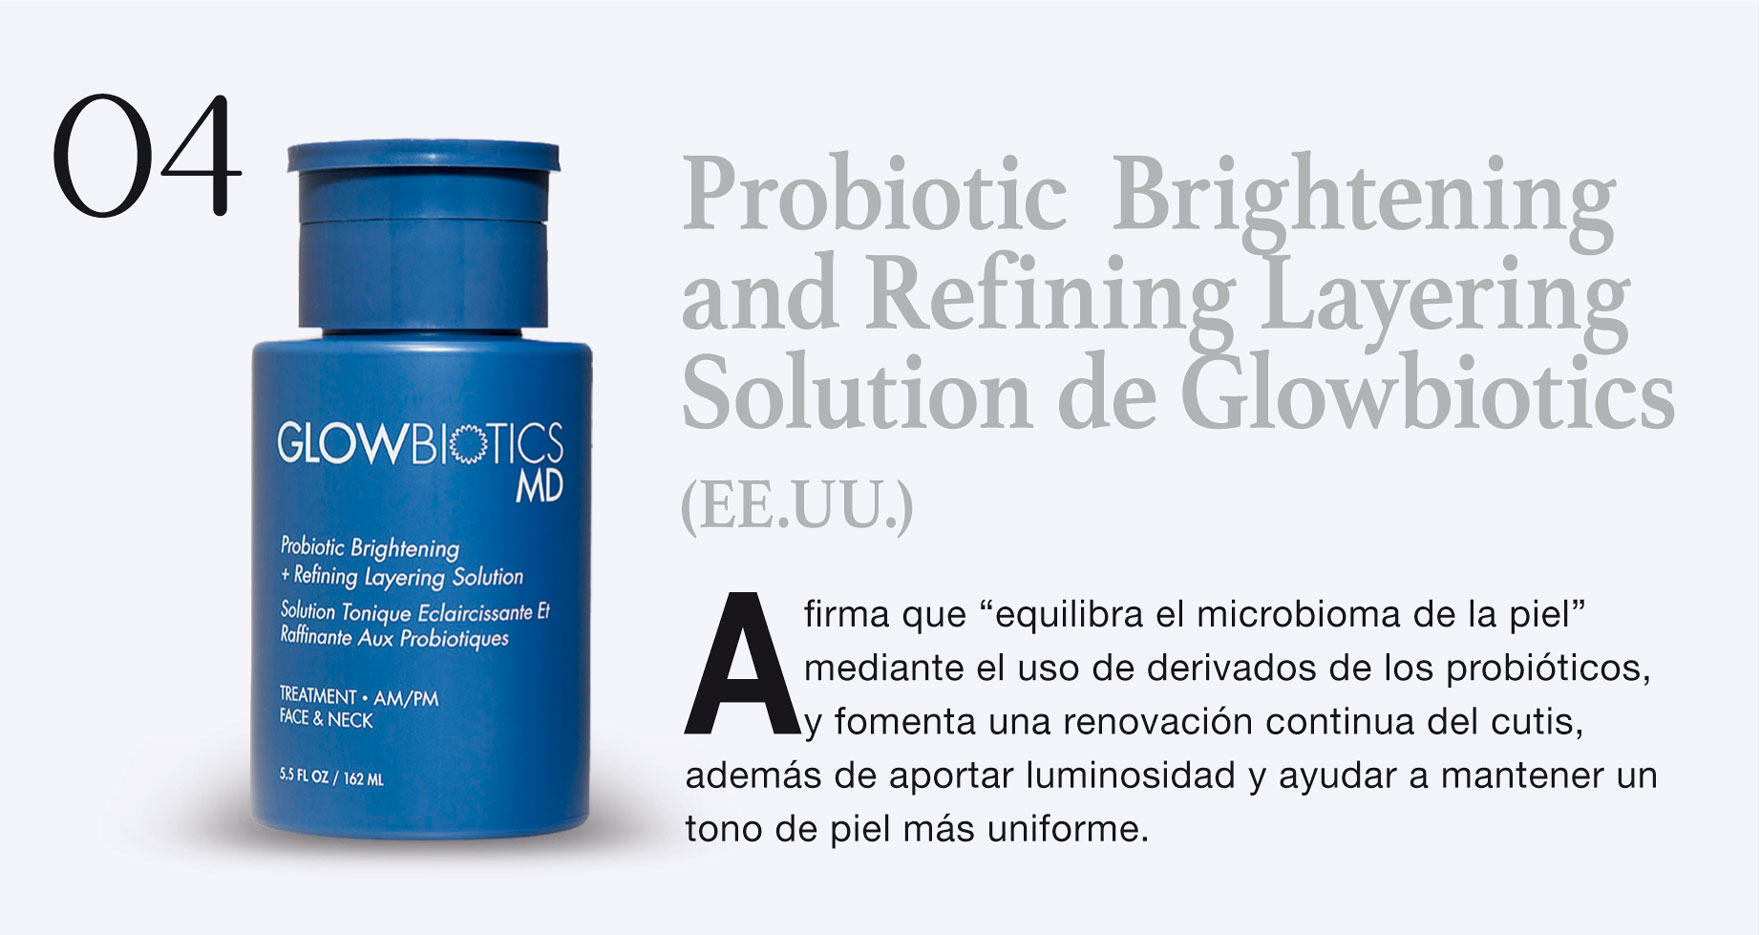 Probiotic Brightening and Refining Layering Solution de Glowbiotics